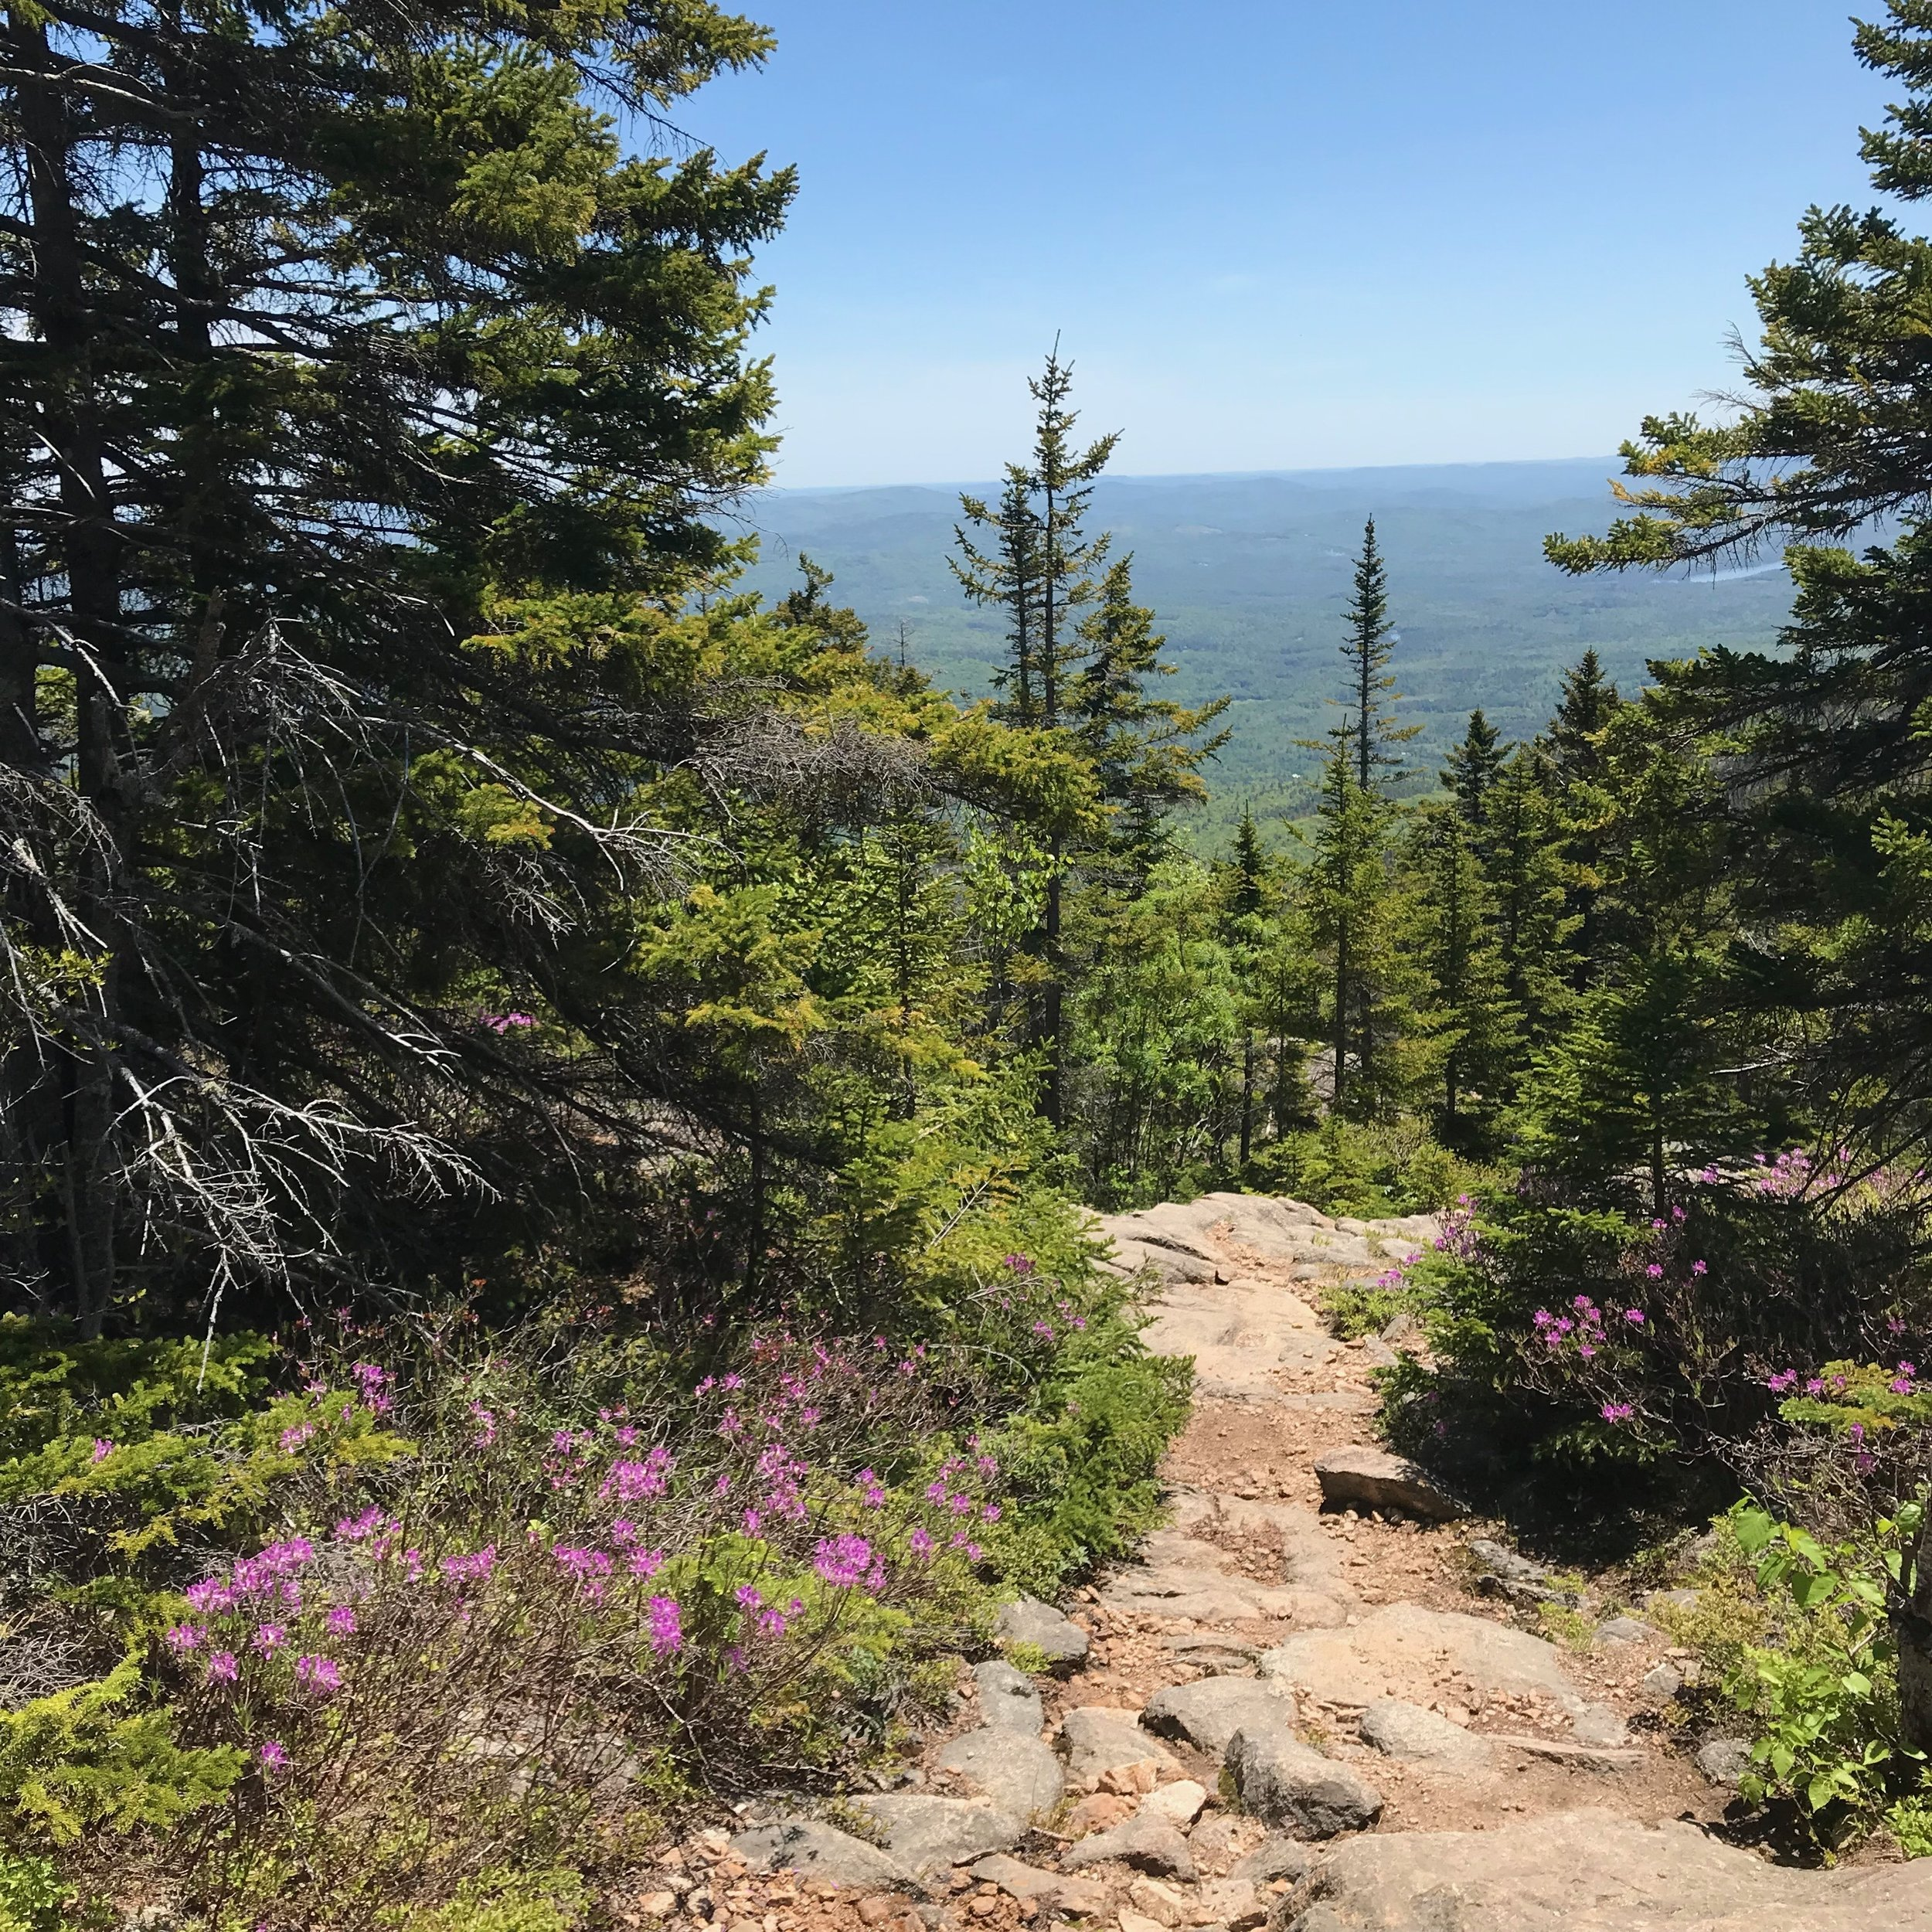 Rhodora,  rhododendron canadense , blooming on the Liberty Trail, Mount Chocorua. Photo: Juno Lamb